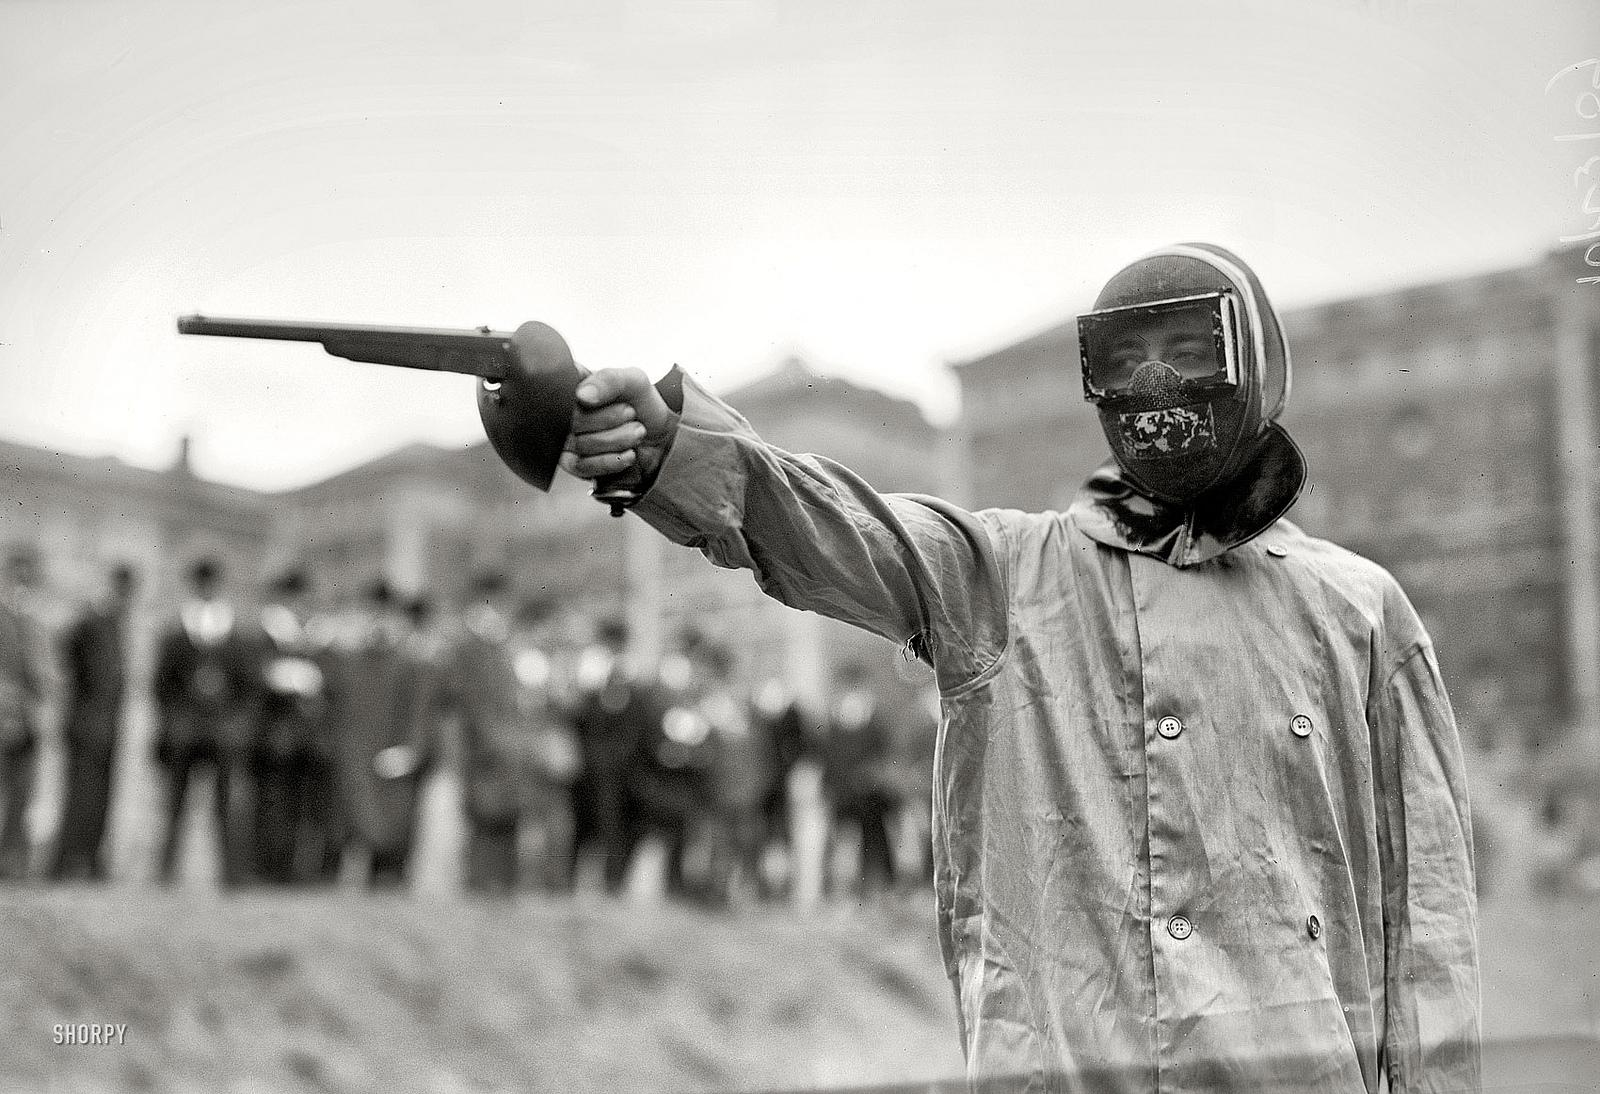 Duelling with wax bullets October 23, 1909 | Flickr - Photo Sharing!